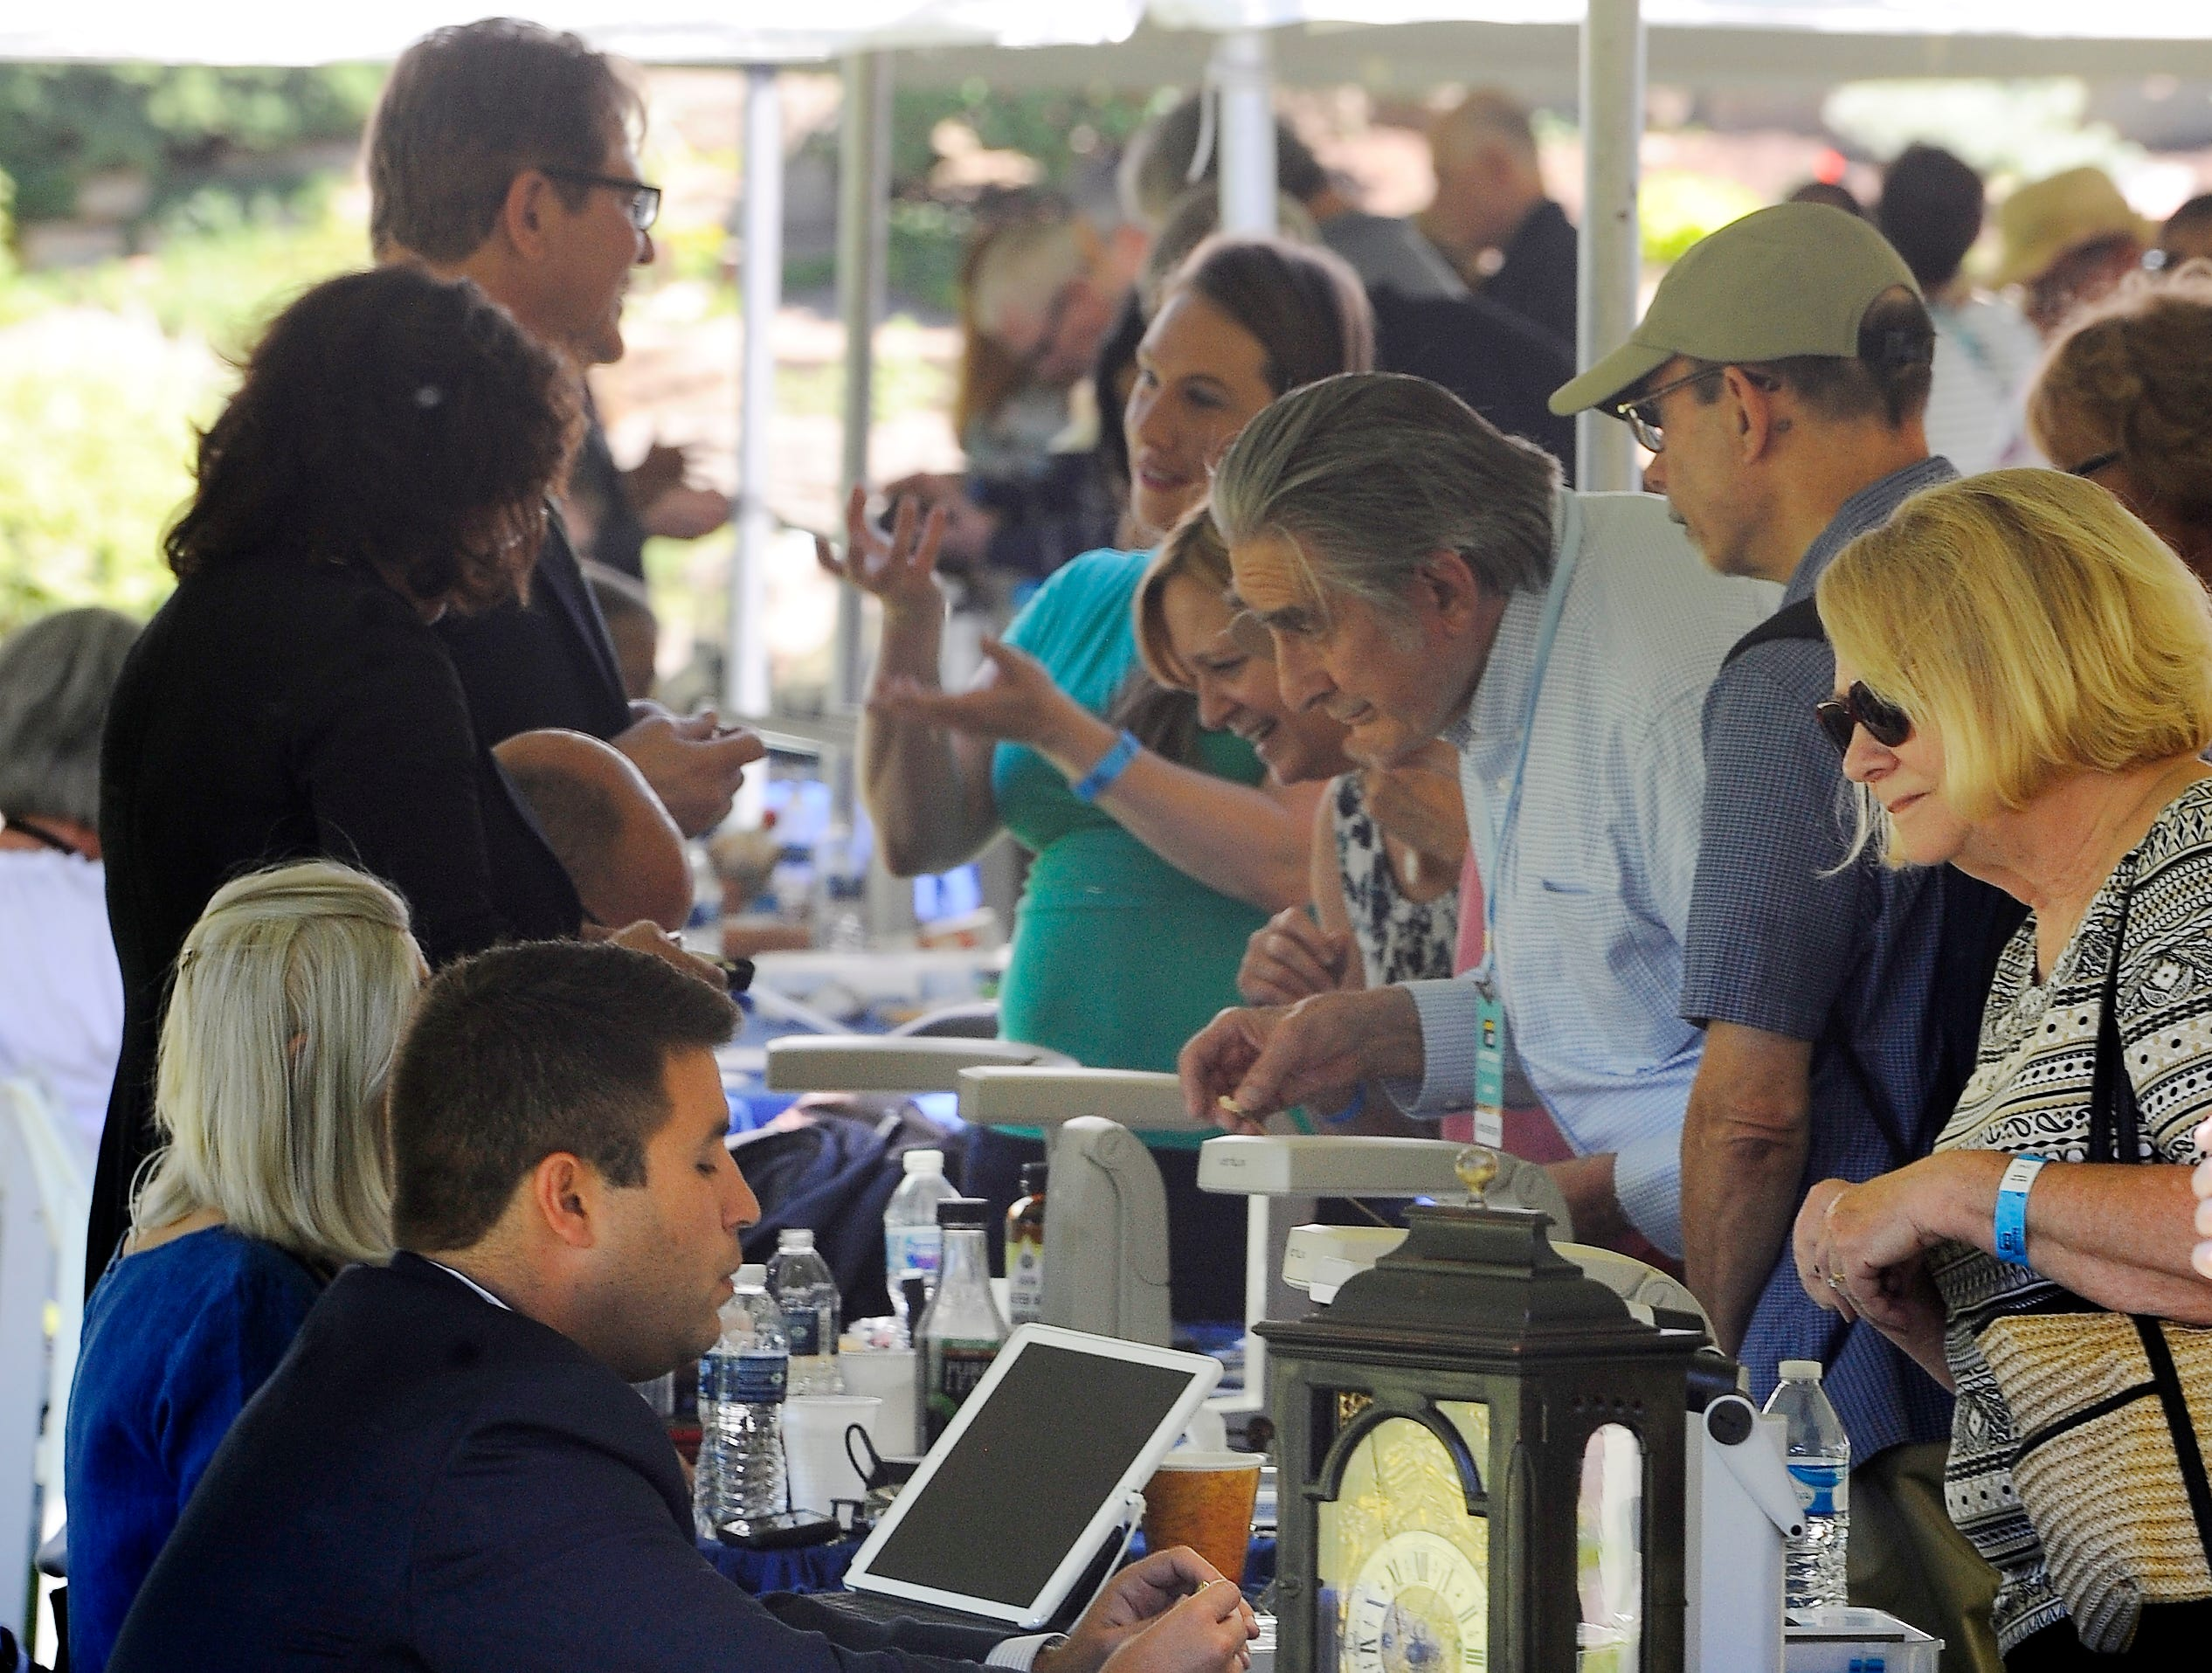 Dozens of appraisers were in place in tents on the grounds at Meadow Brook to determine the value of various vintage items.